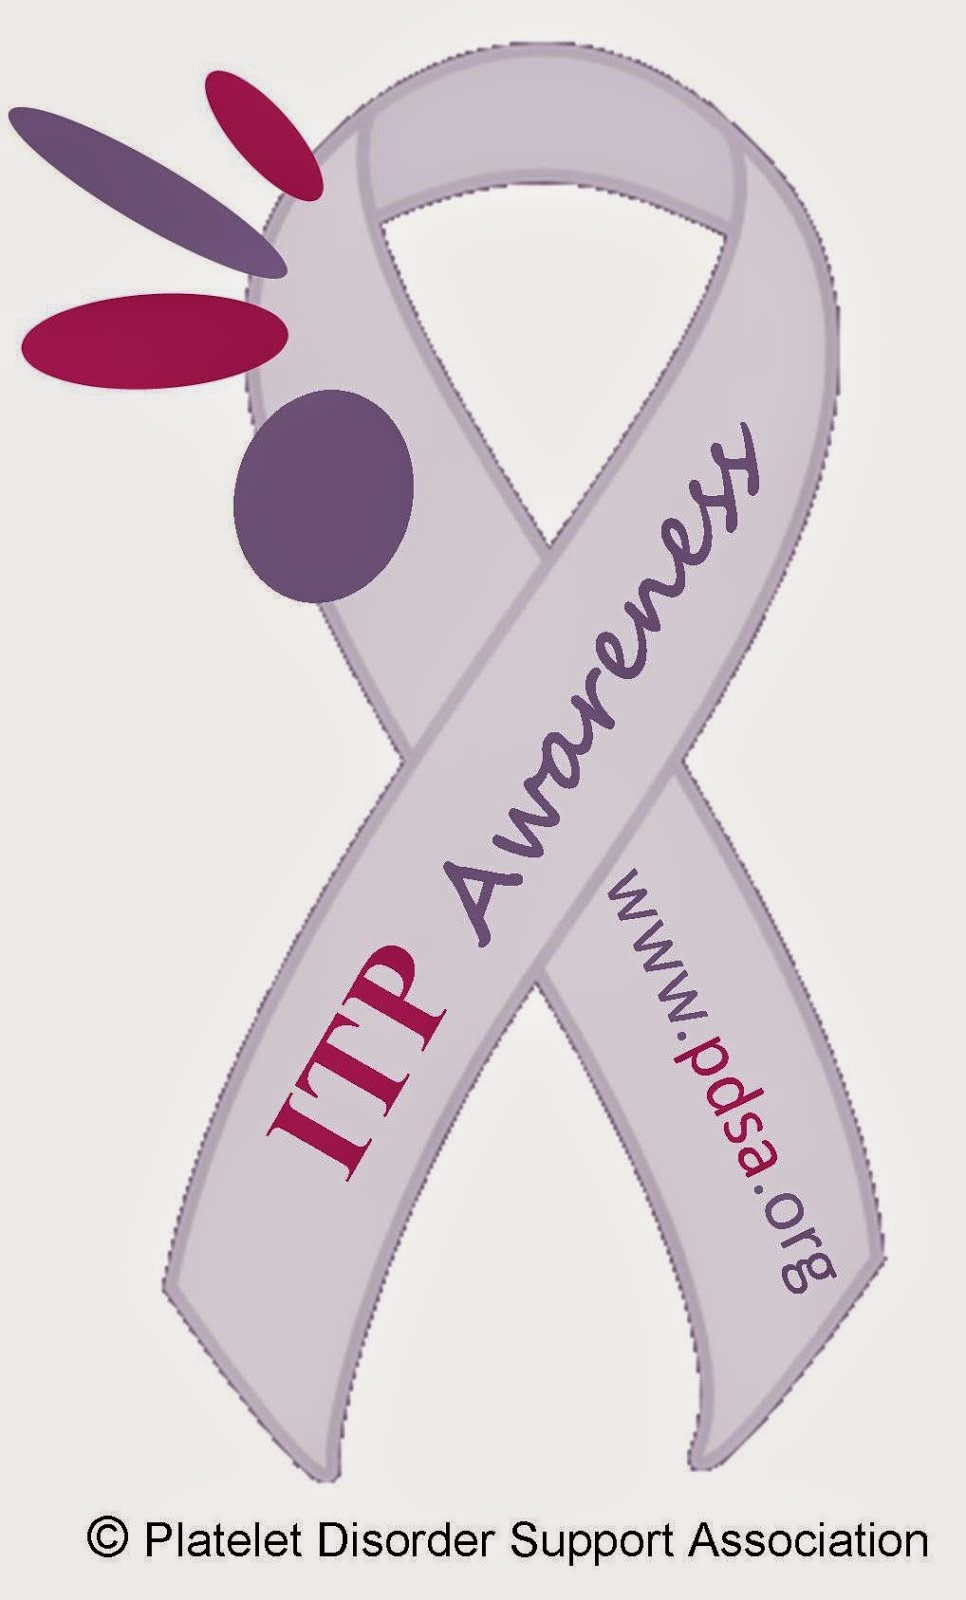 ITP Awareness